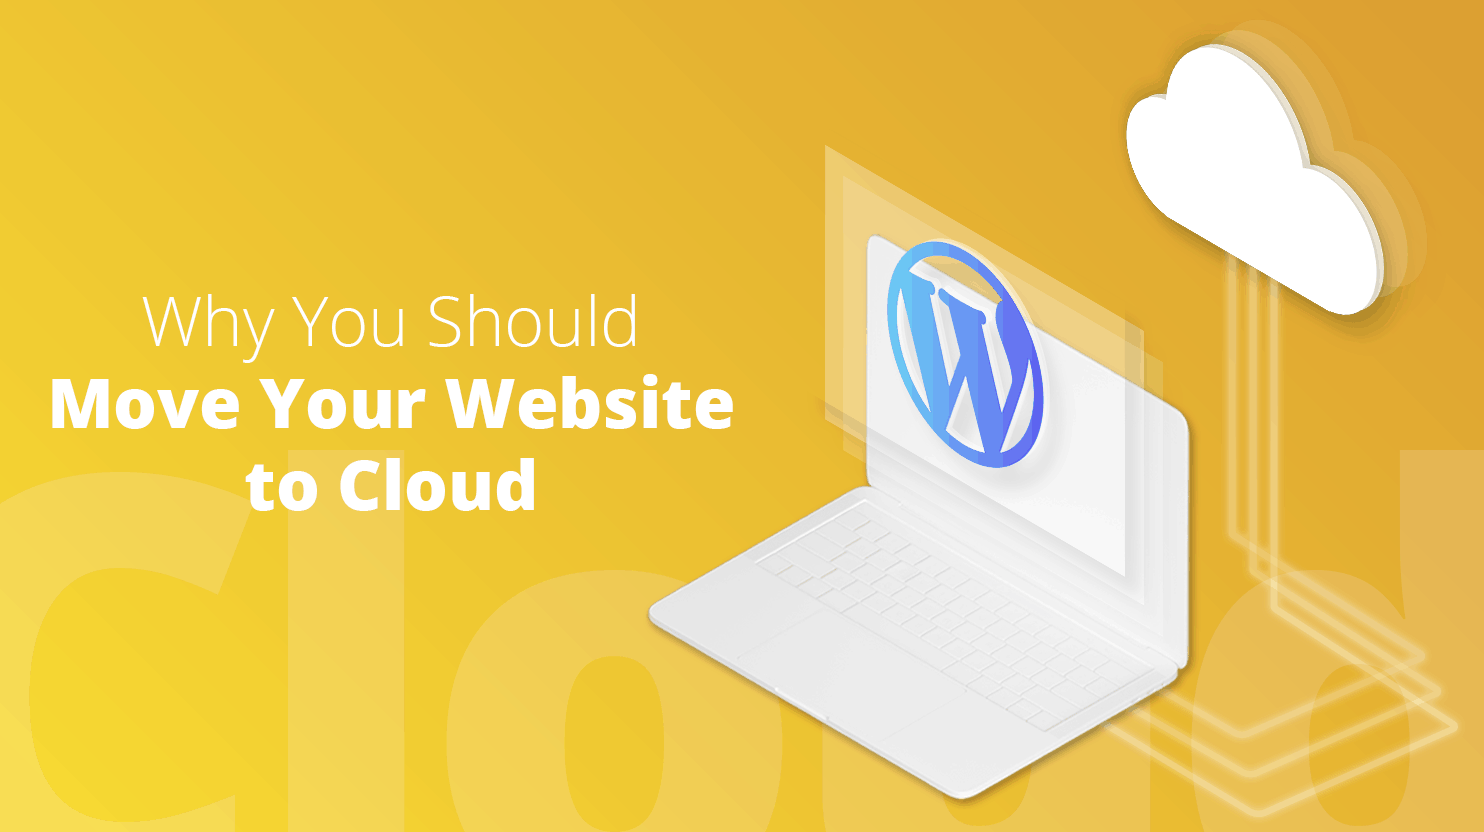 Why You Should Move Your Website to Cloud